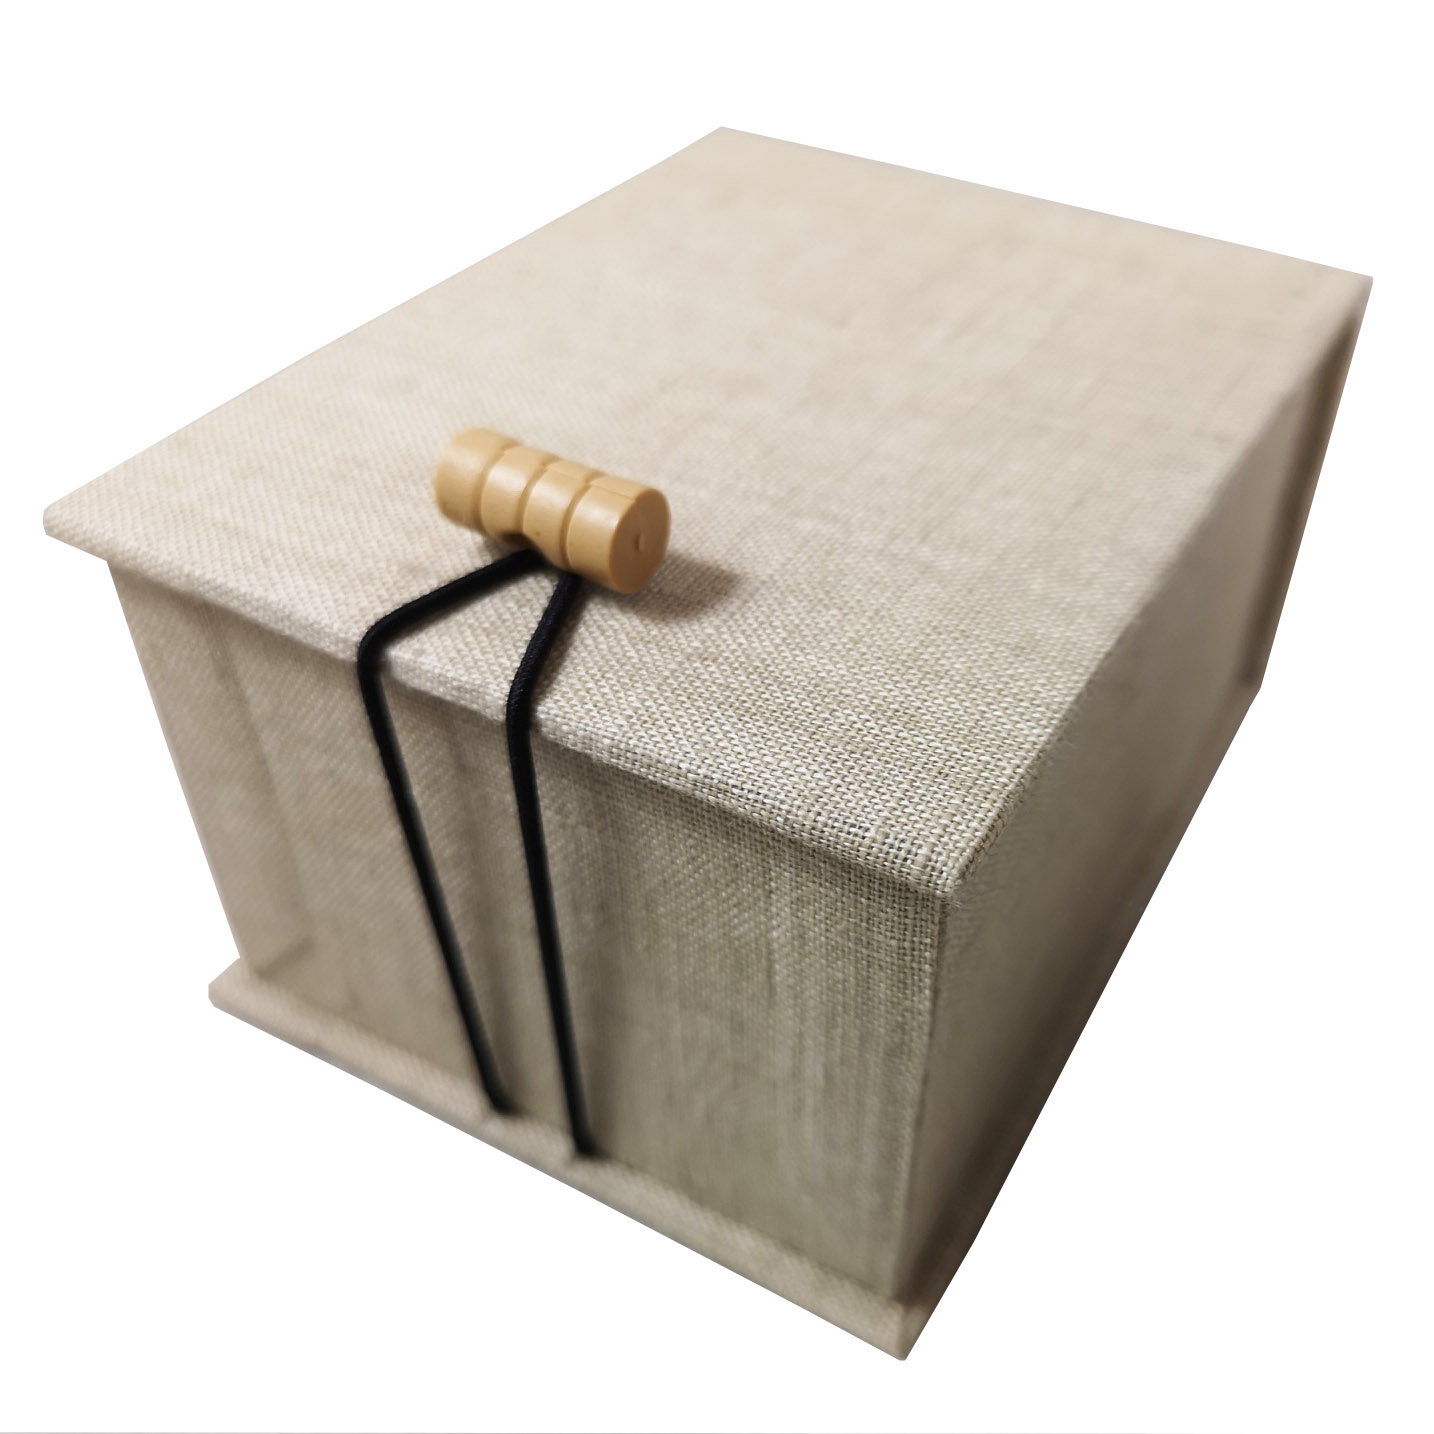 Small linen box for USB sticks, jewelry or gift